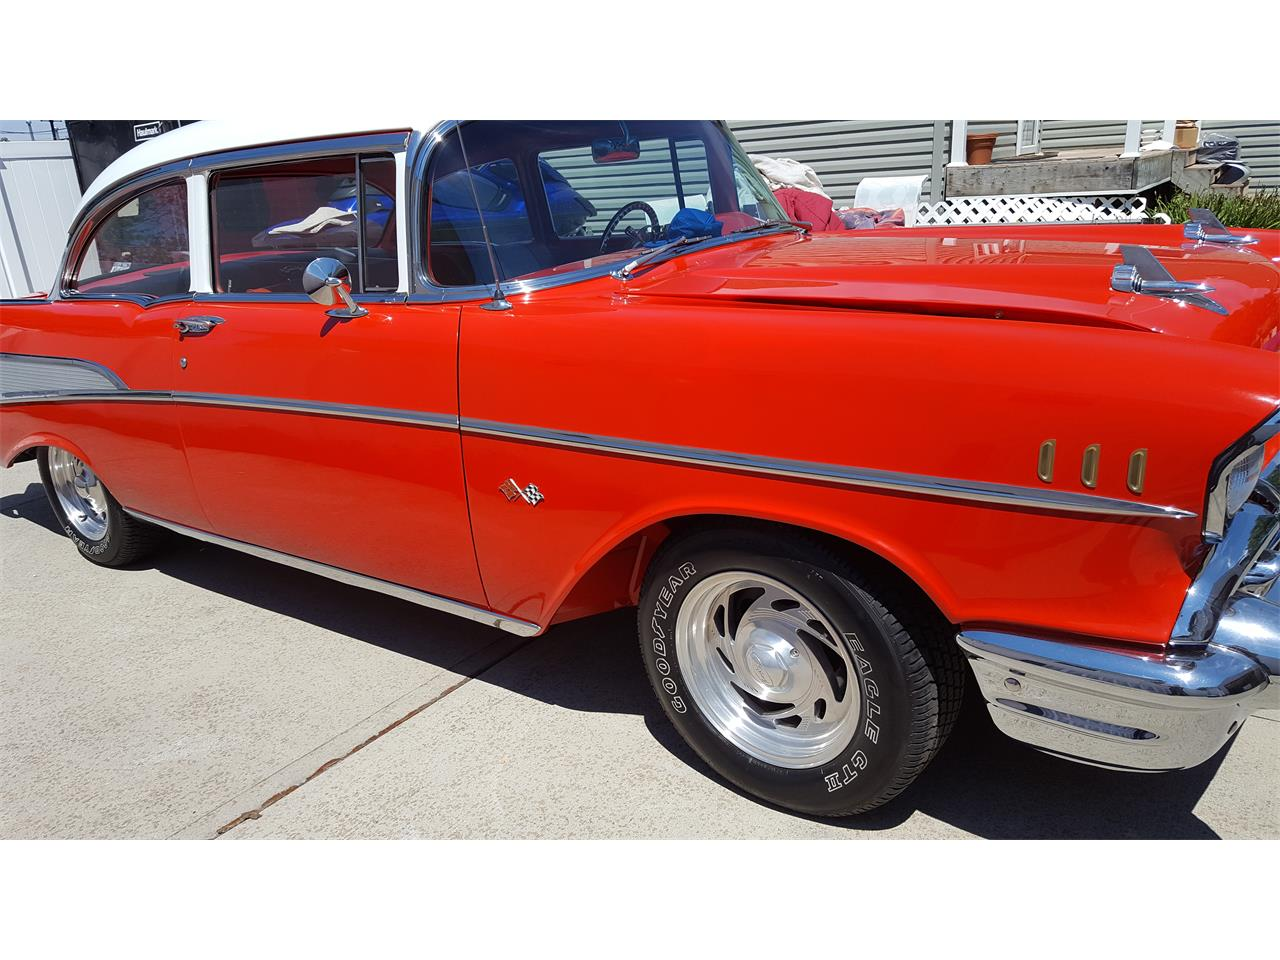 Large Picture of Classic 1957 Chevrolet Bel Air - $69,999.00 Offered by a Private Seller - PN5I